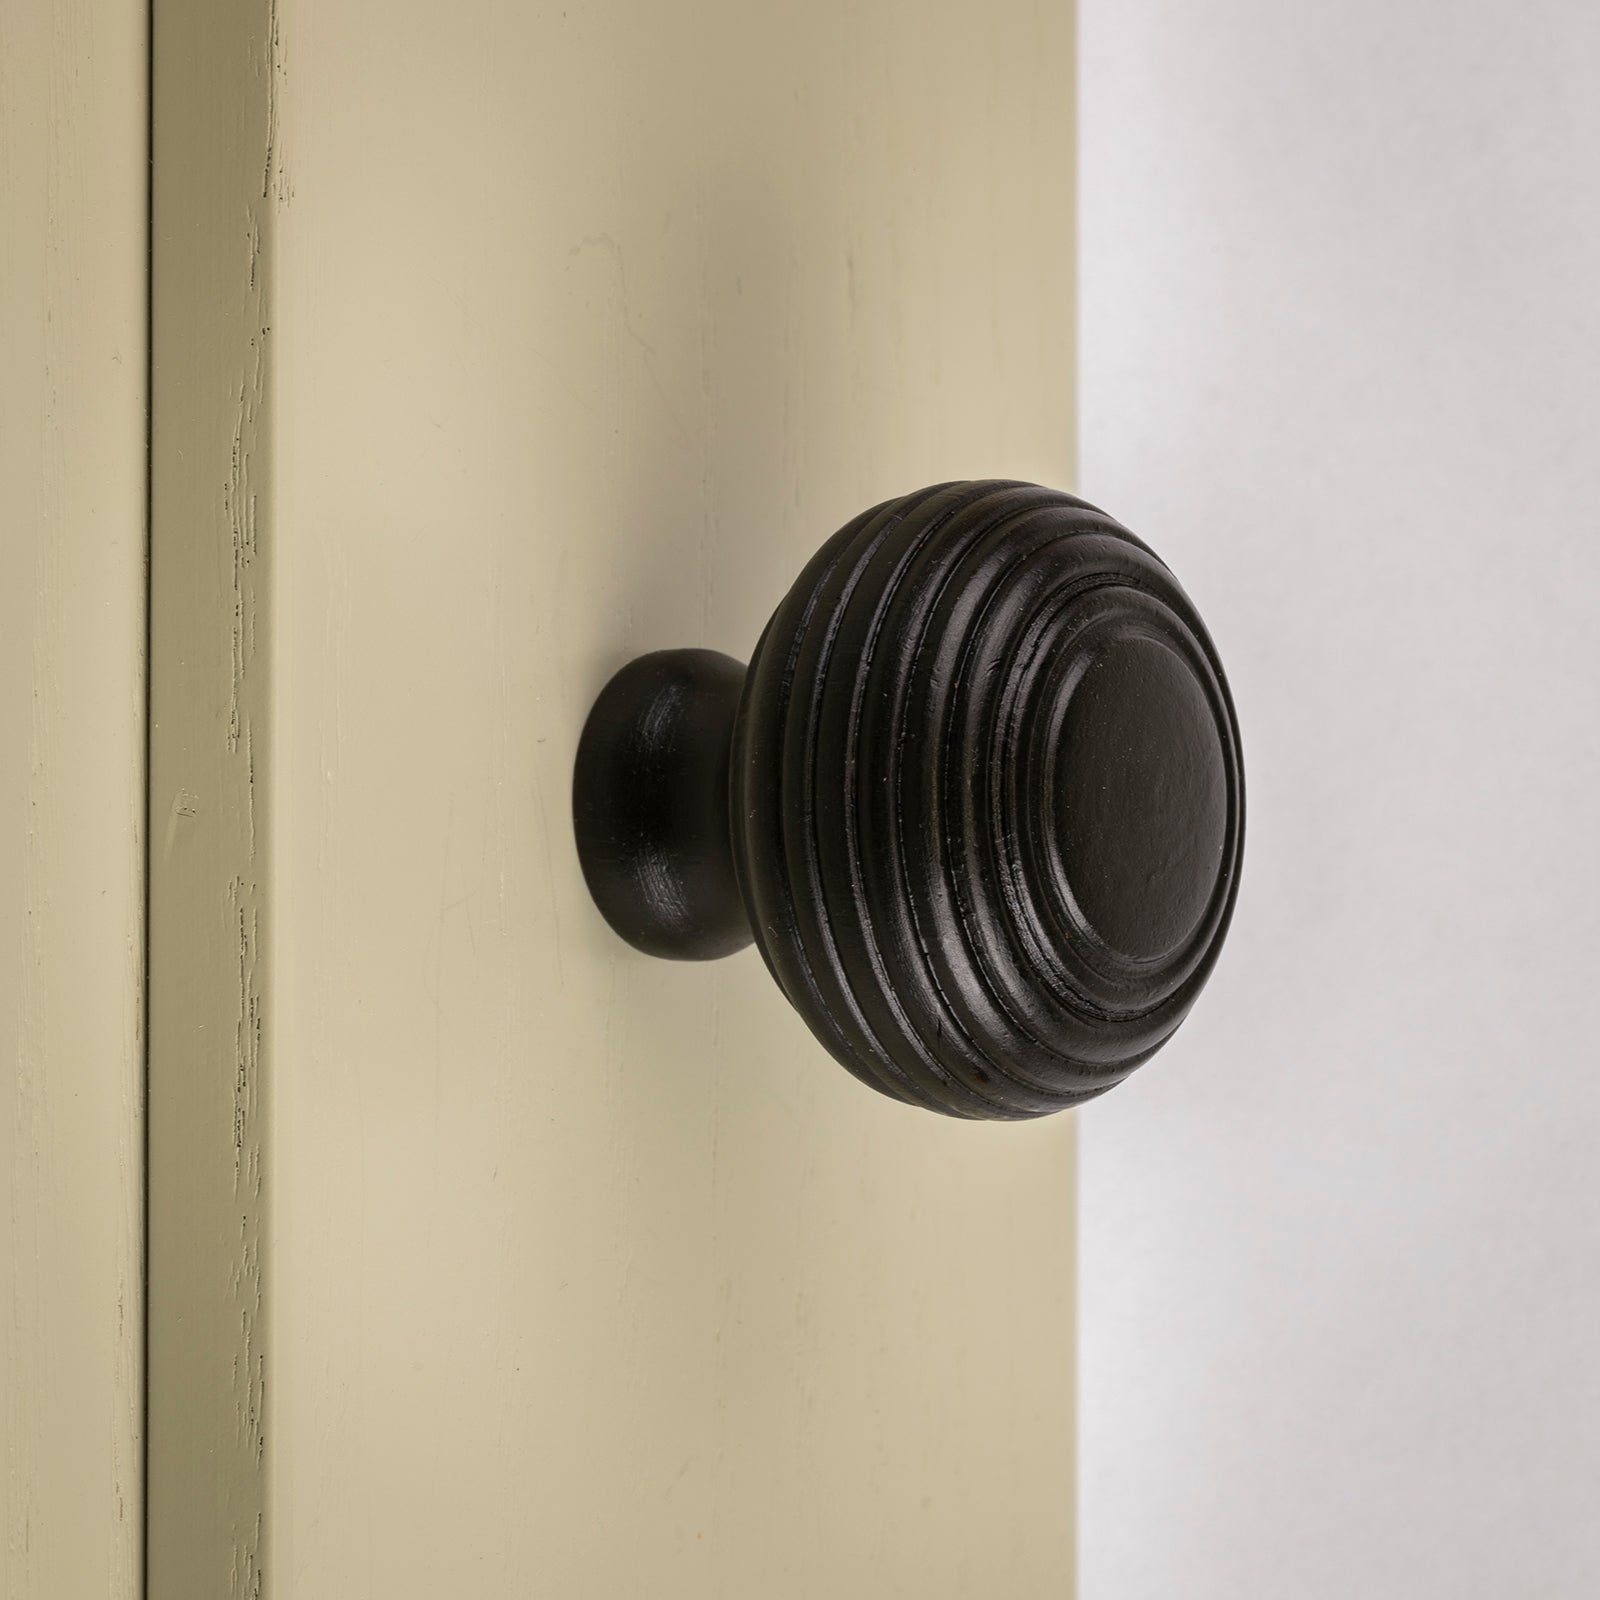 beehive cupboard door knobs SHOW